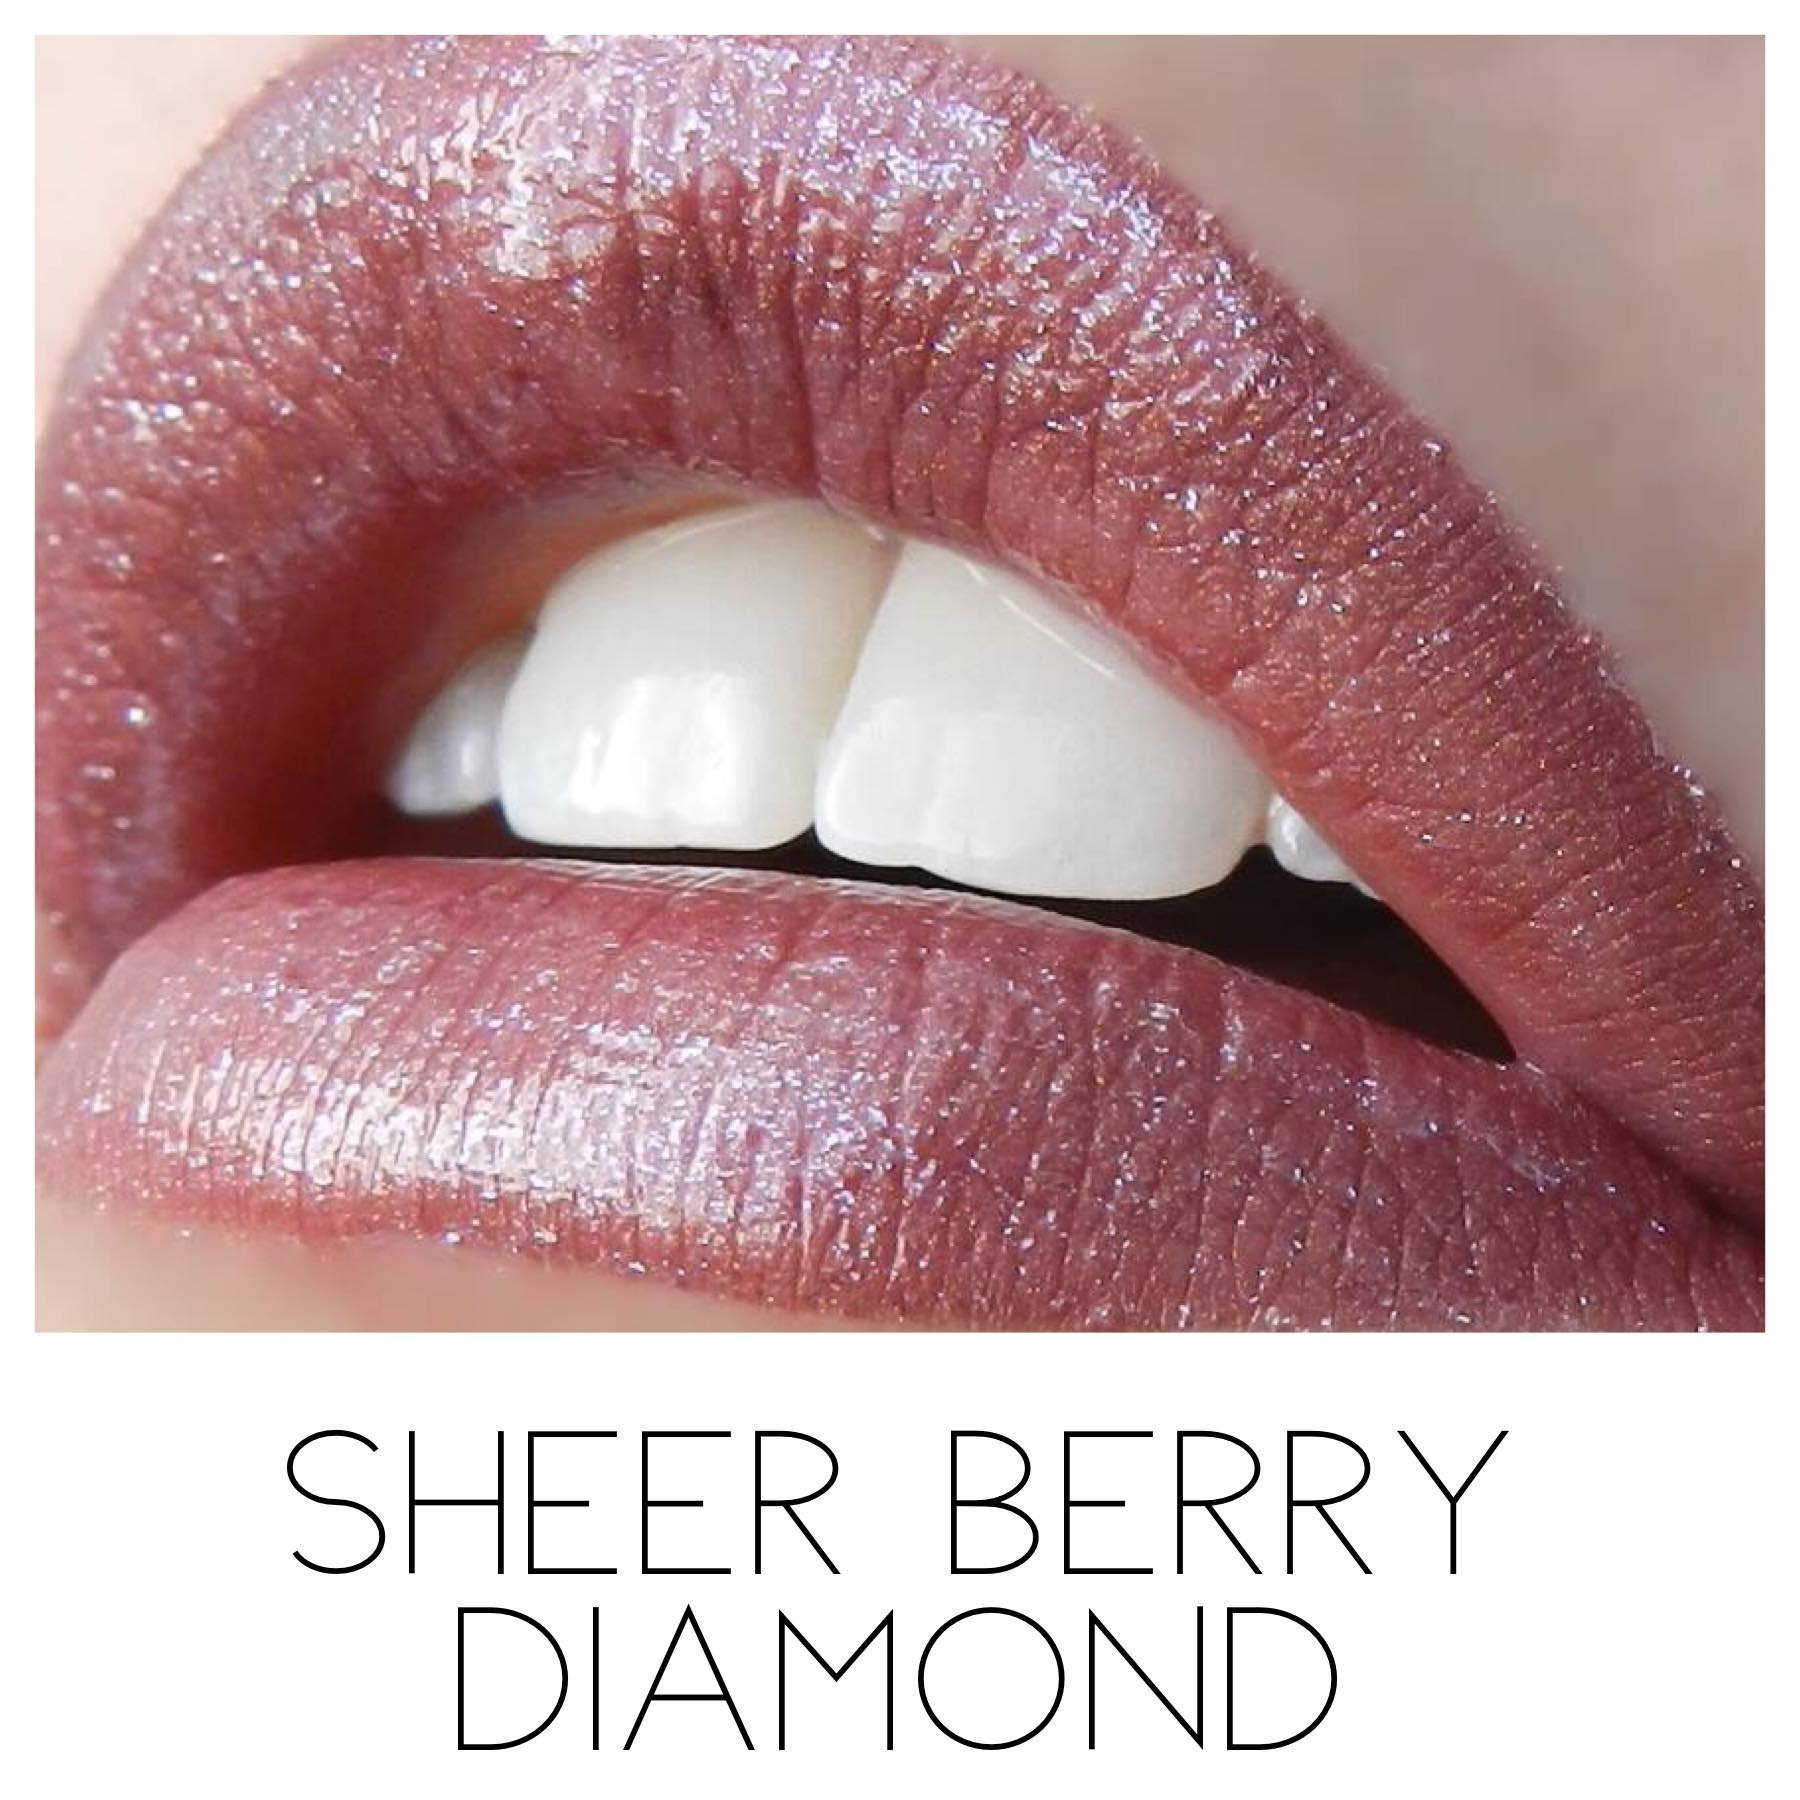 Lipsense Sheer Berry Diamond by LipSense (Image #1)